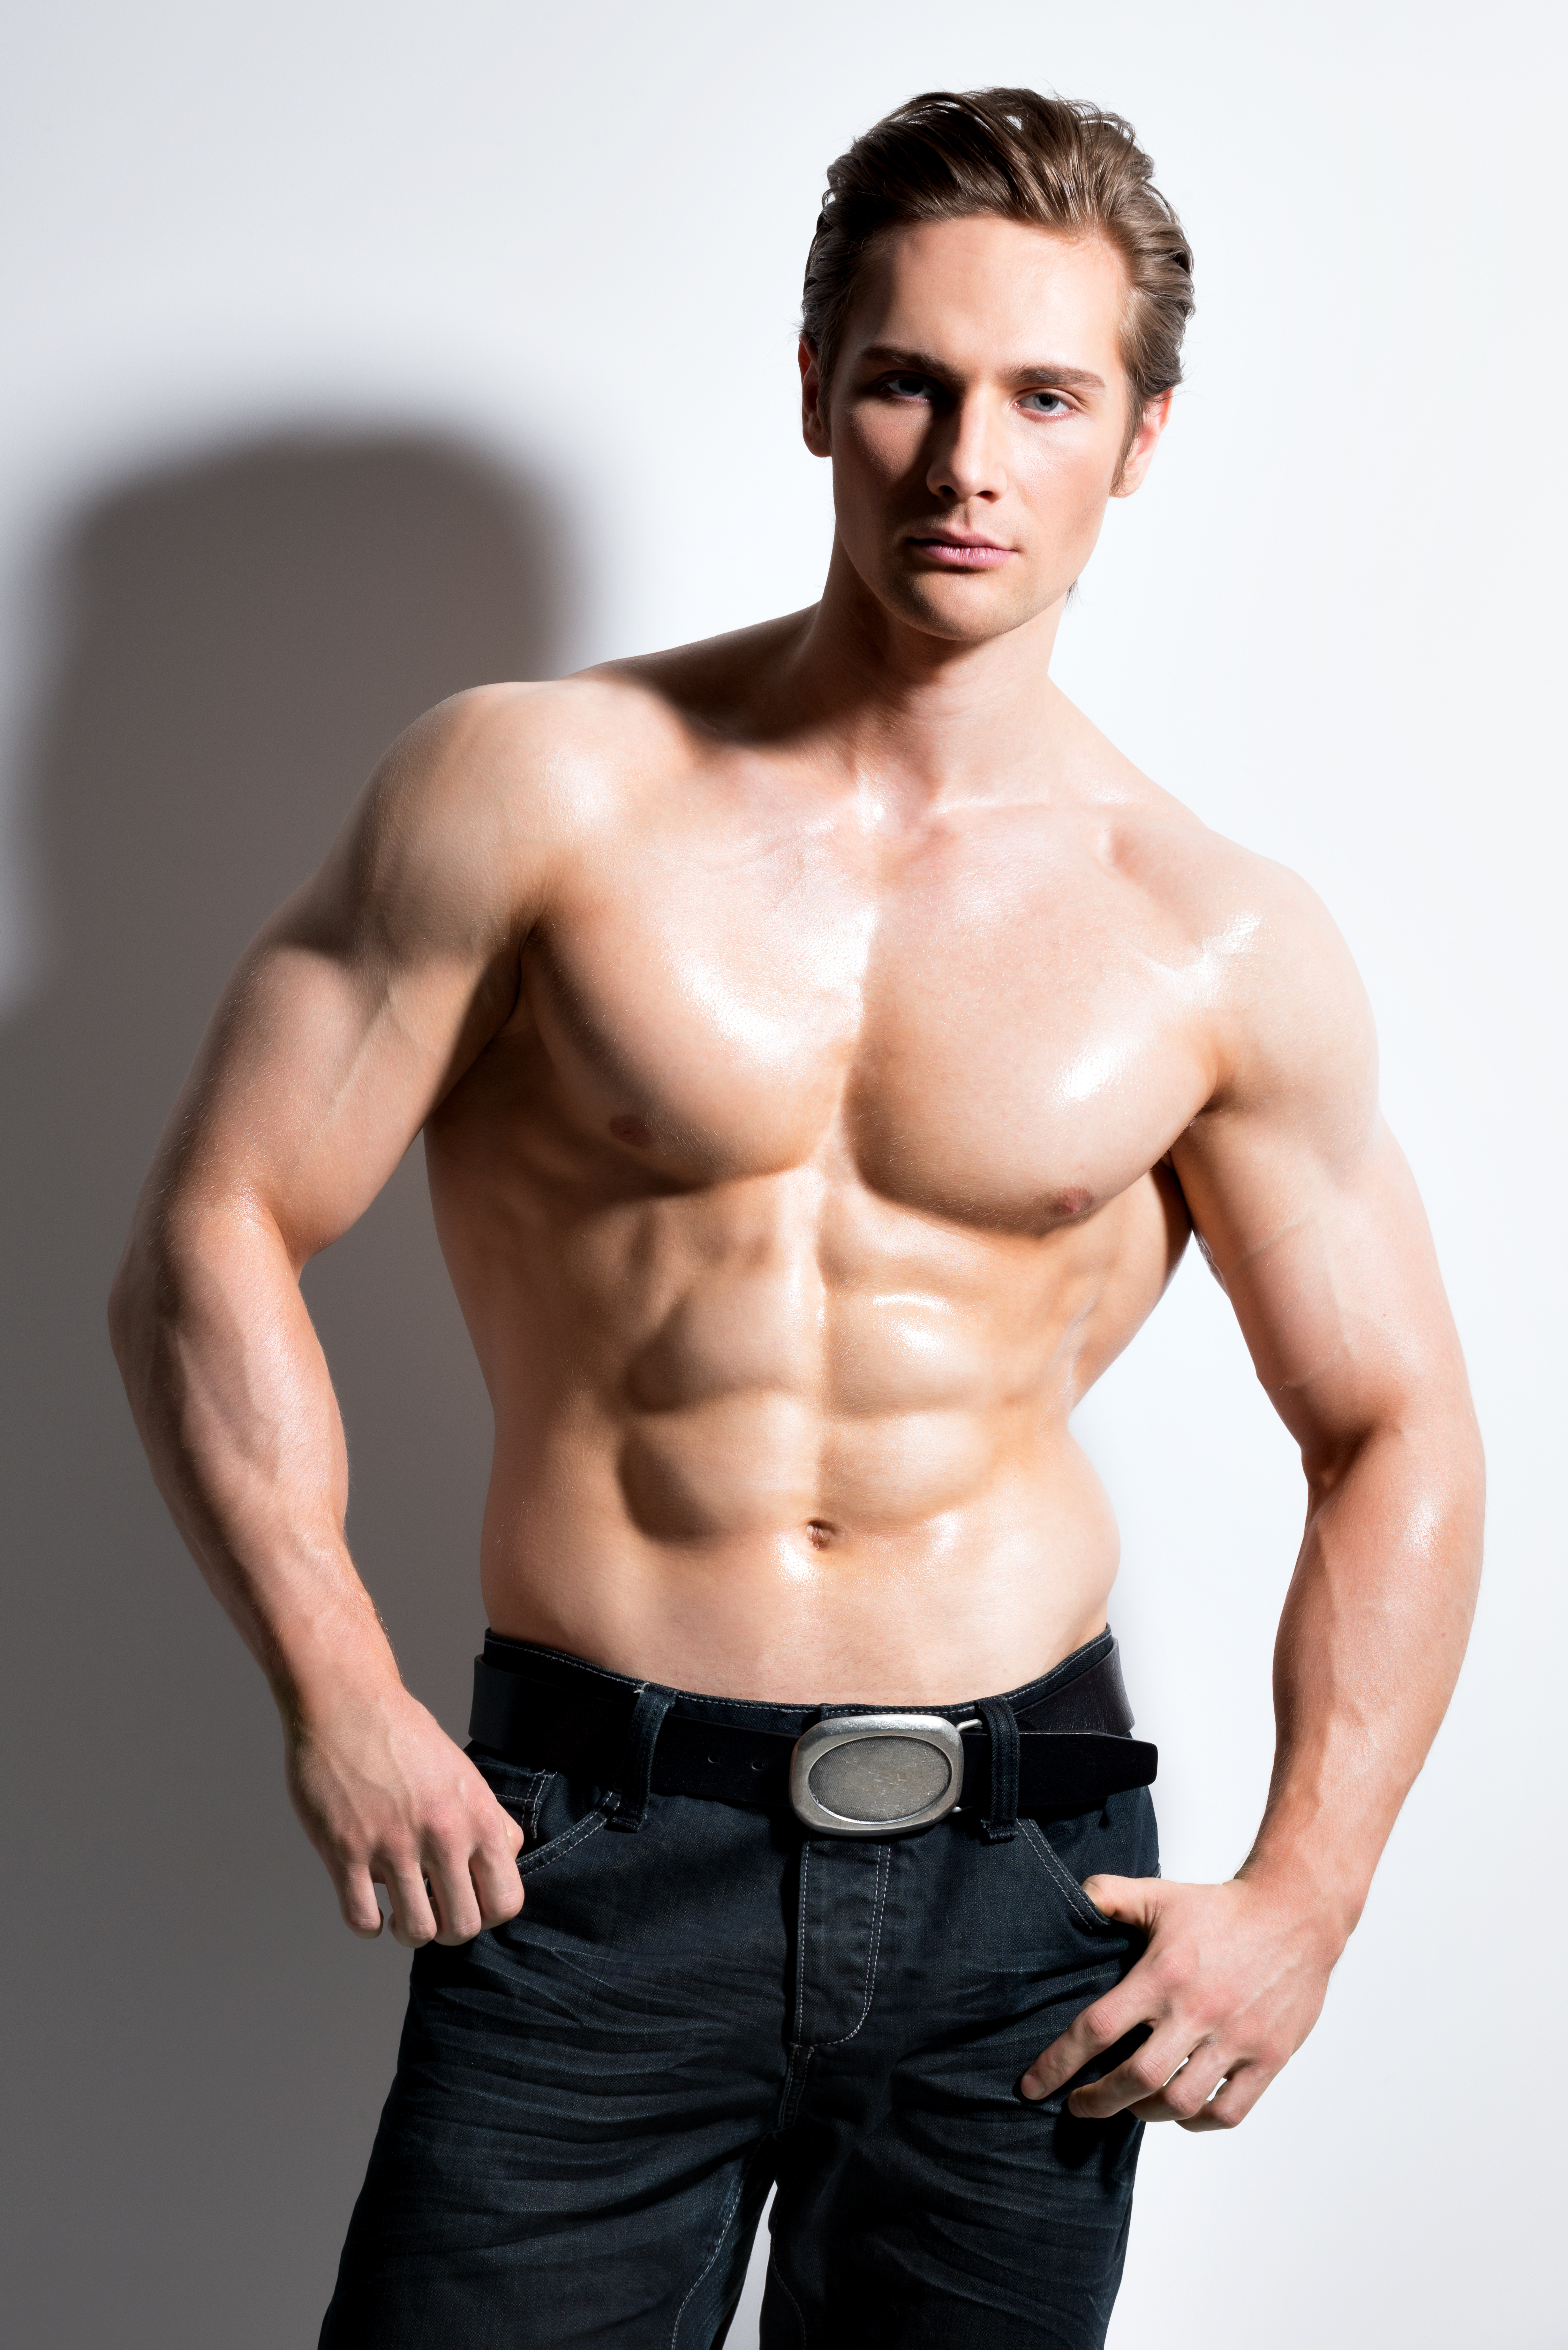 Male strippers toronto ontario